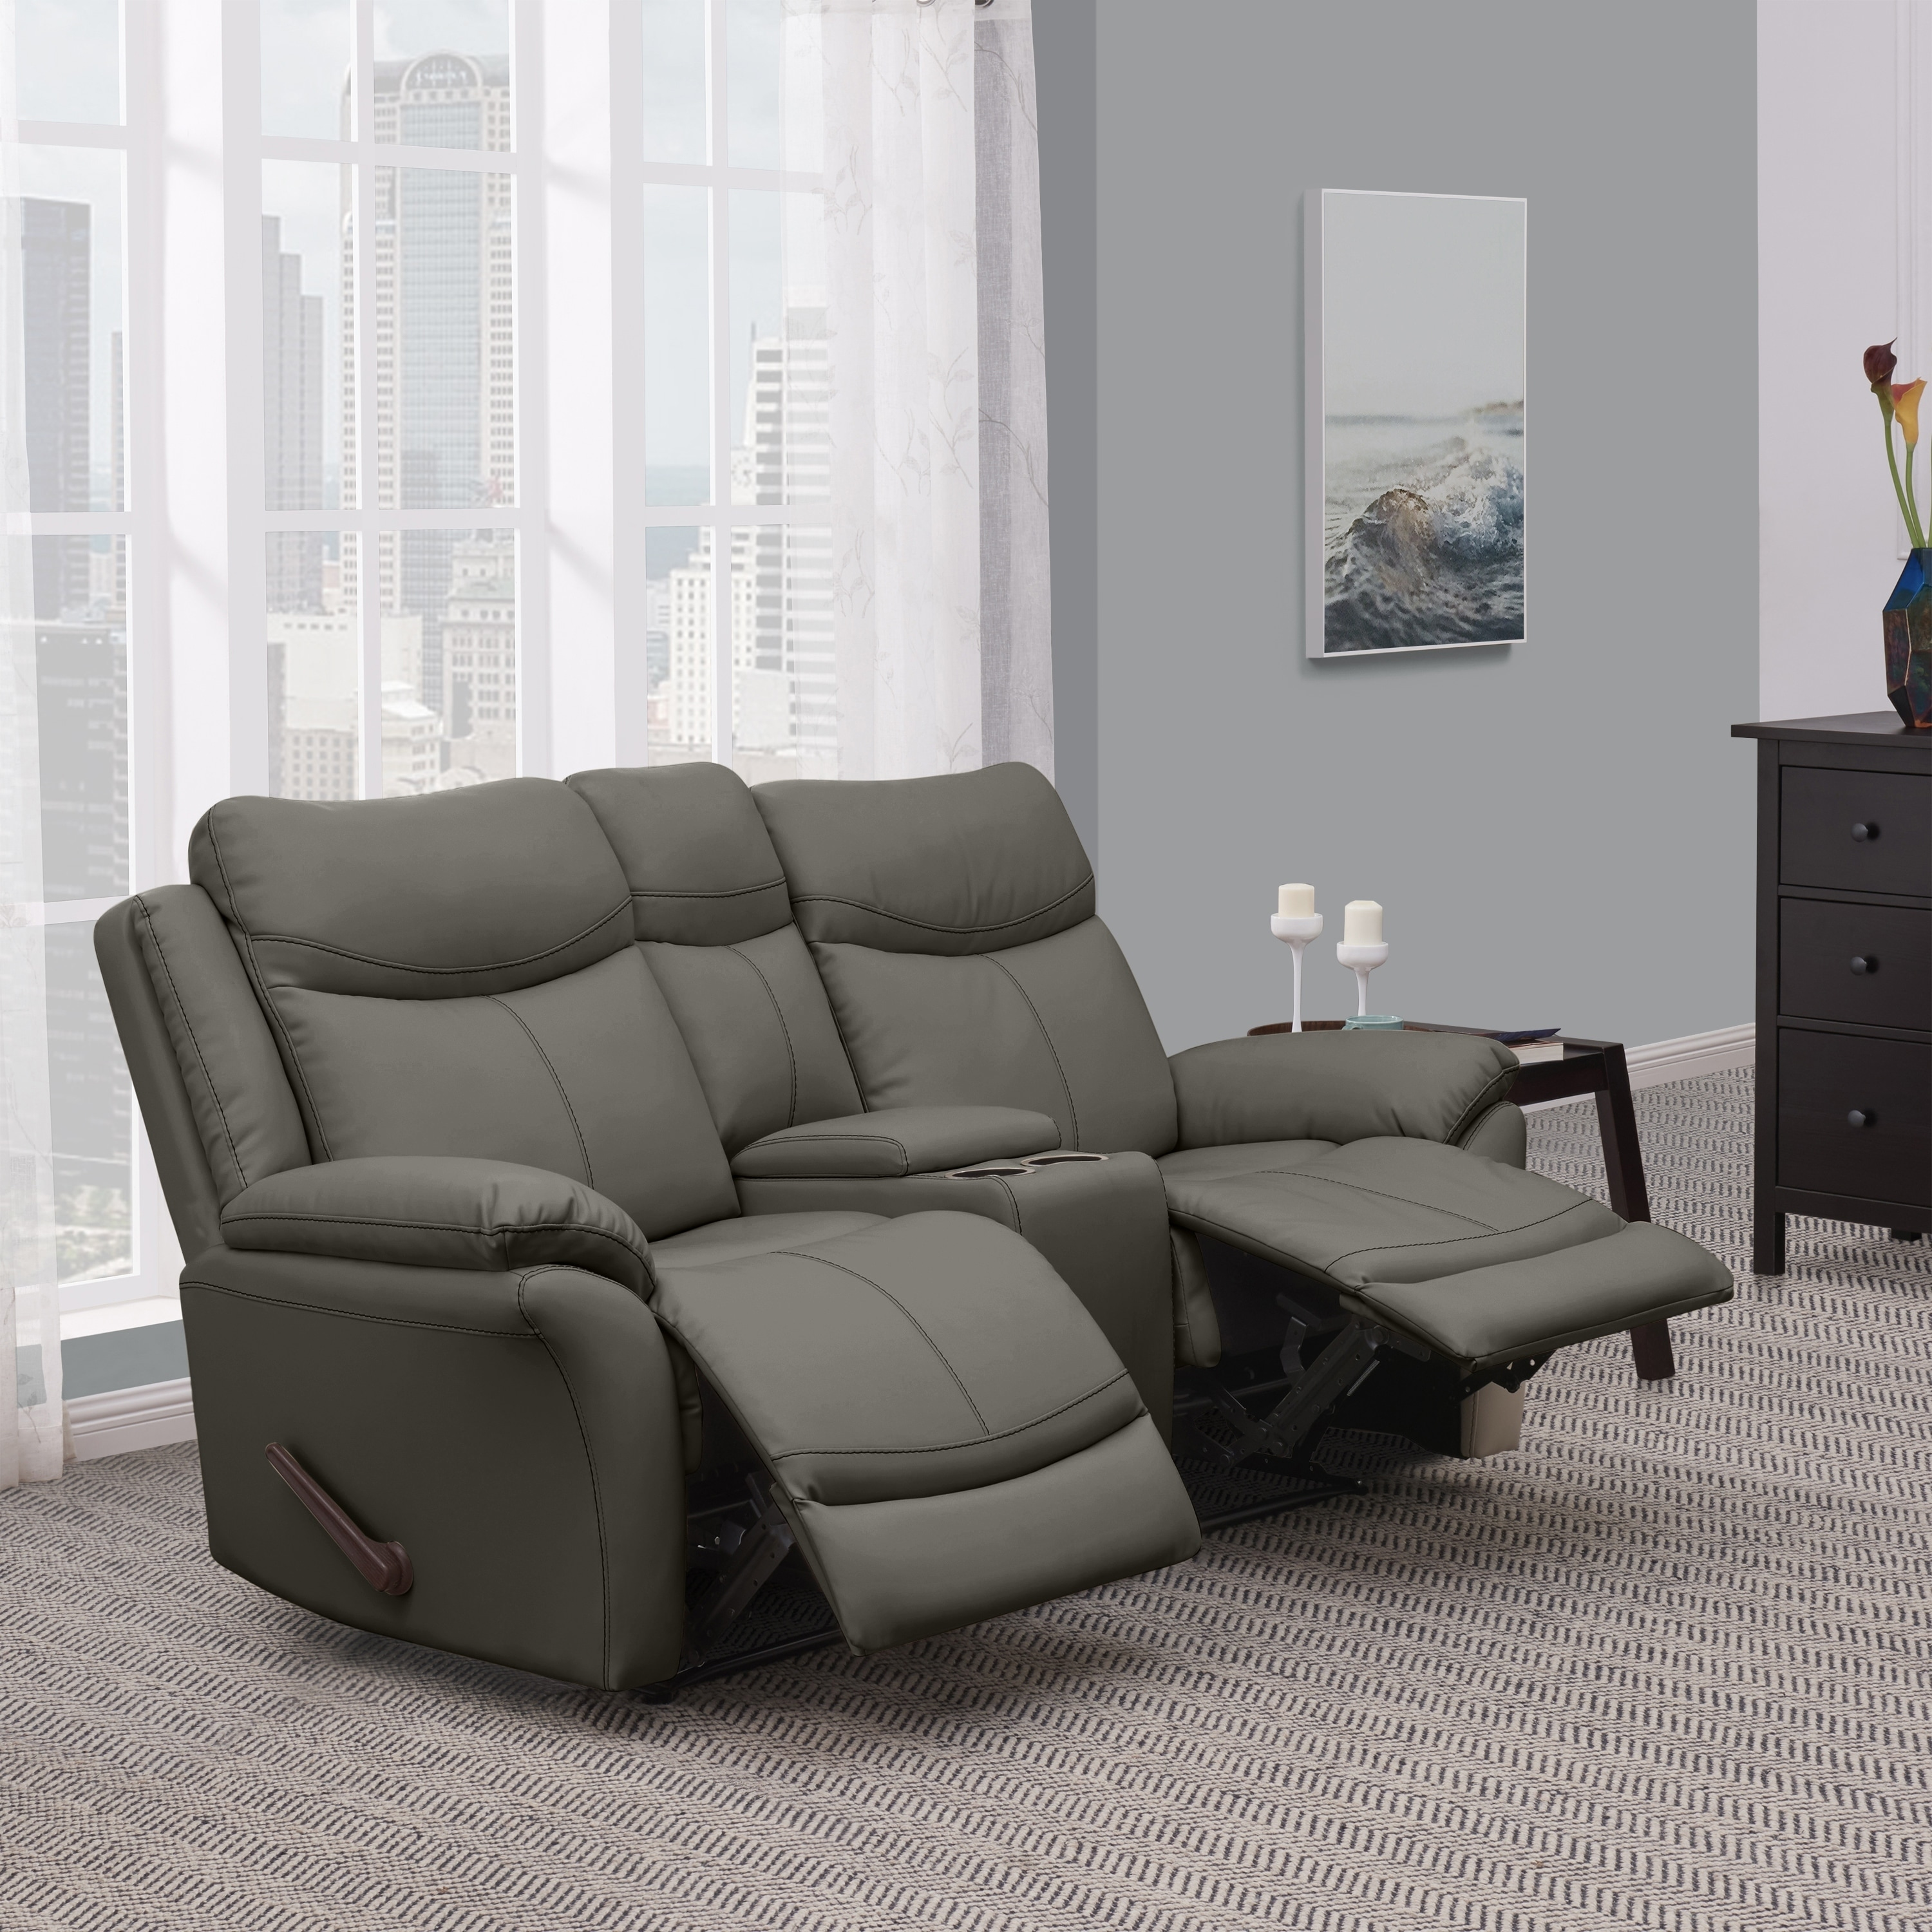 Picture of: Copper Grove Peqin 2 Seat Faux Leather Recliner Loveseat With Power Storage Console On Sale Overstock 25585200